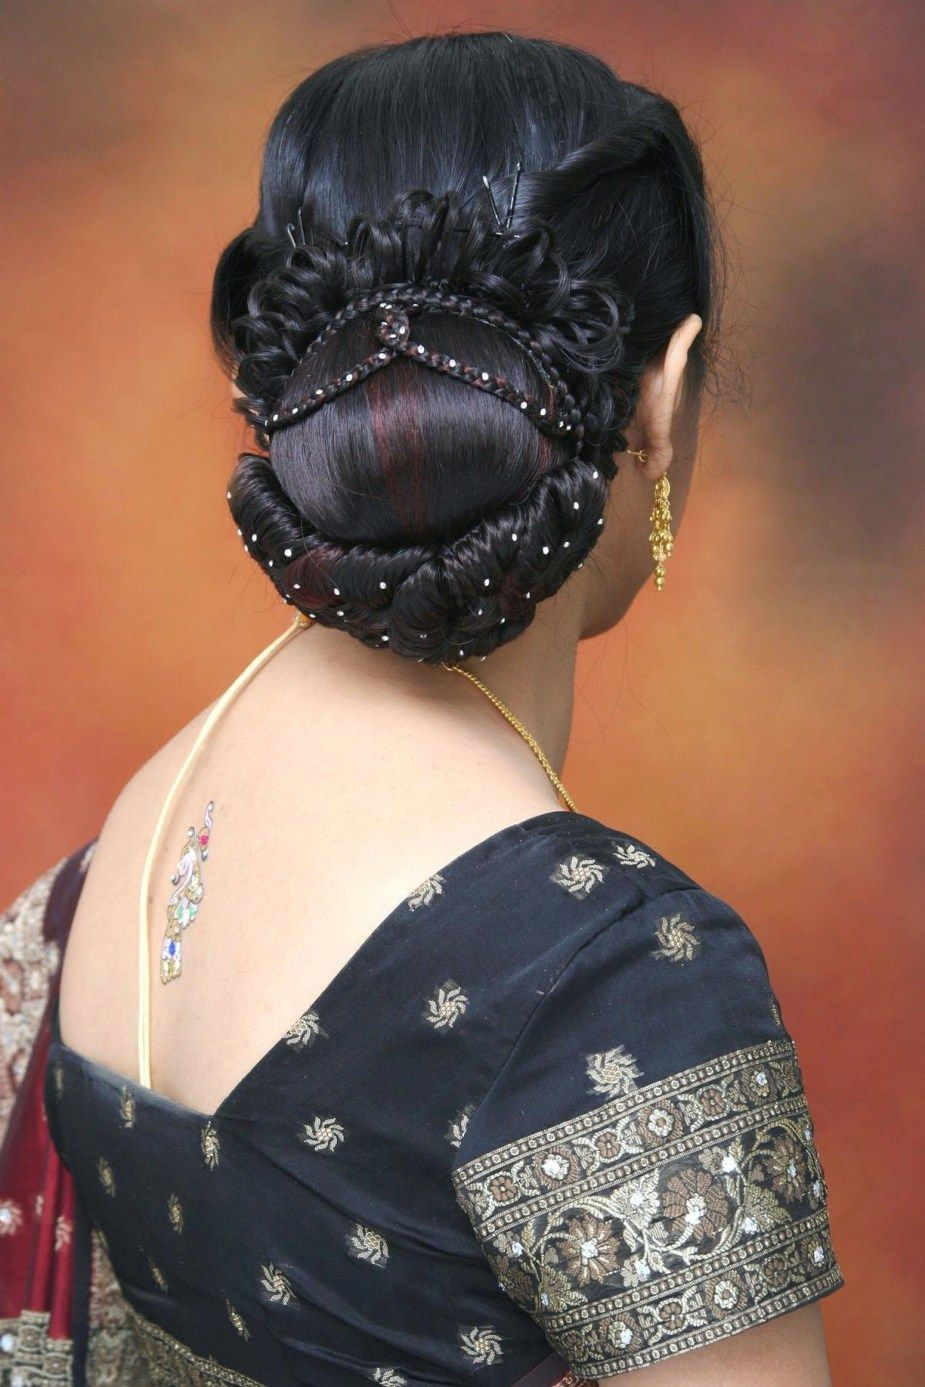 kerala christian wedding hair style for girls | wedding